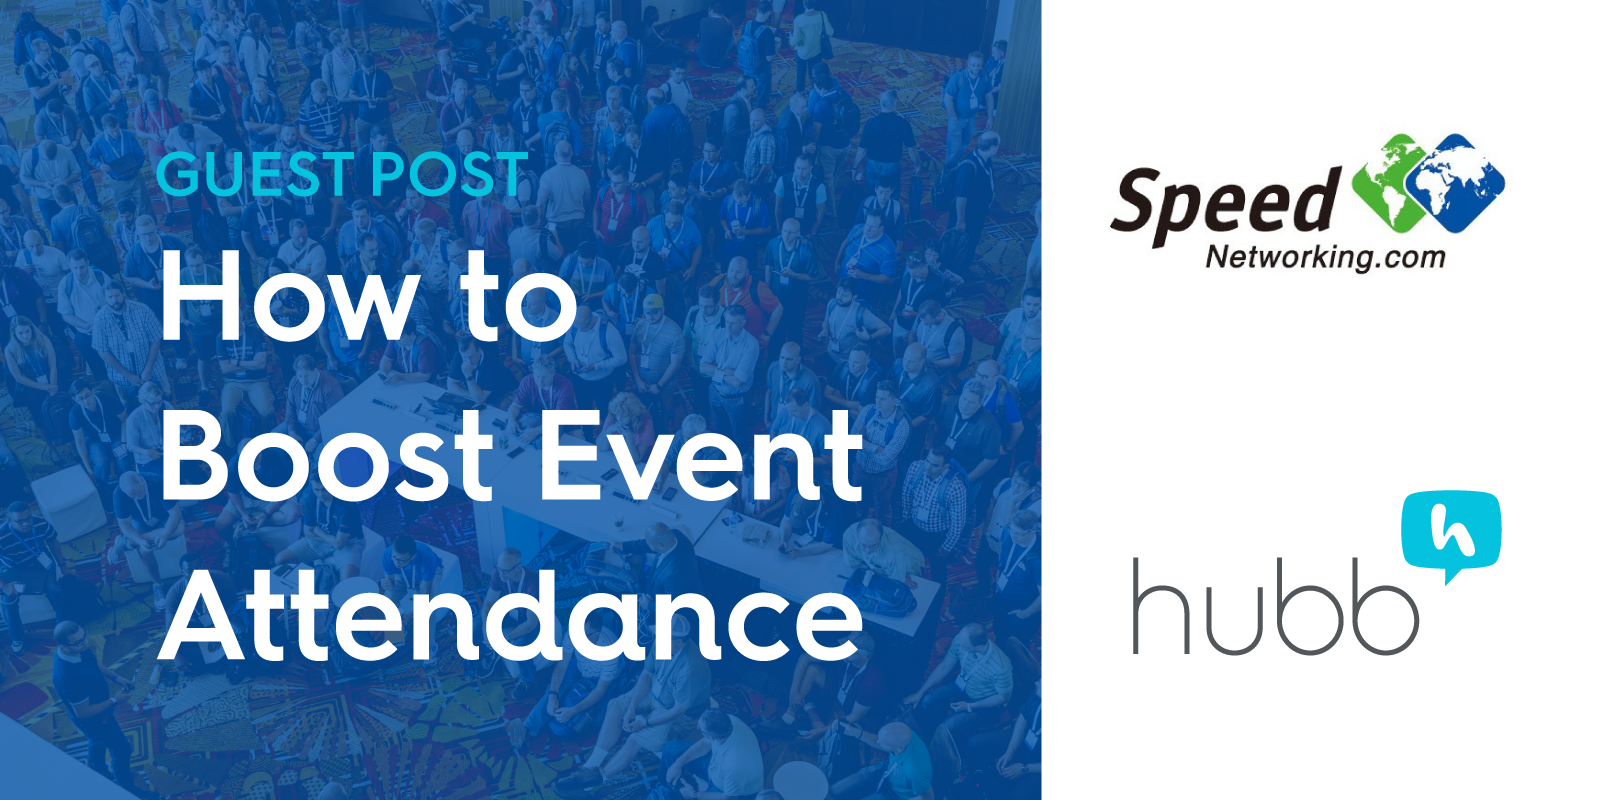 How to Boost Event Attendance